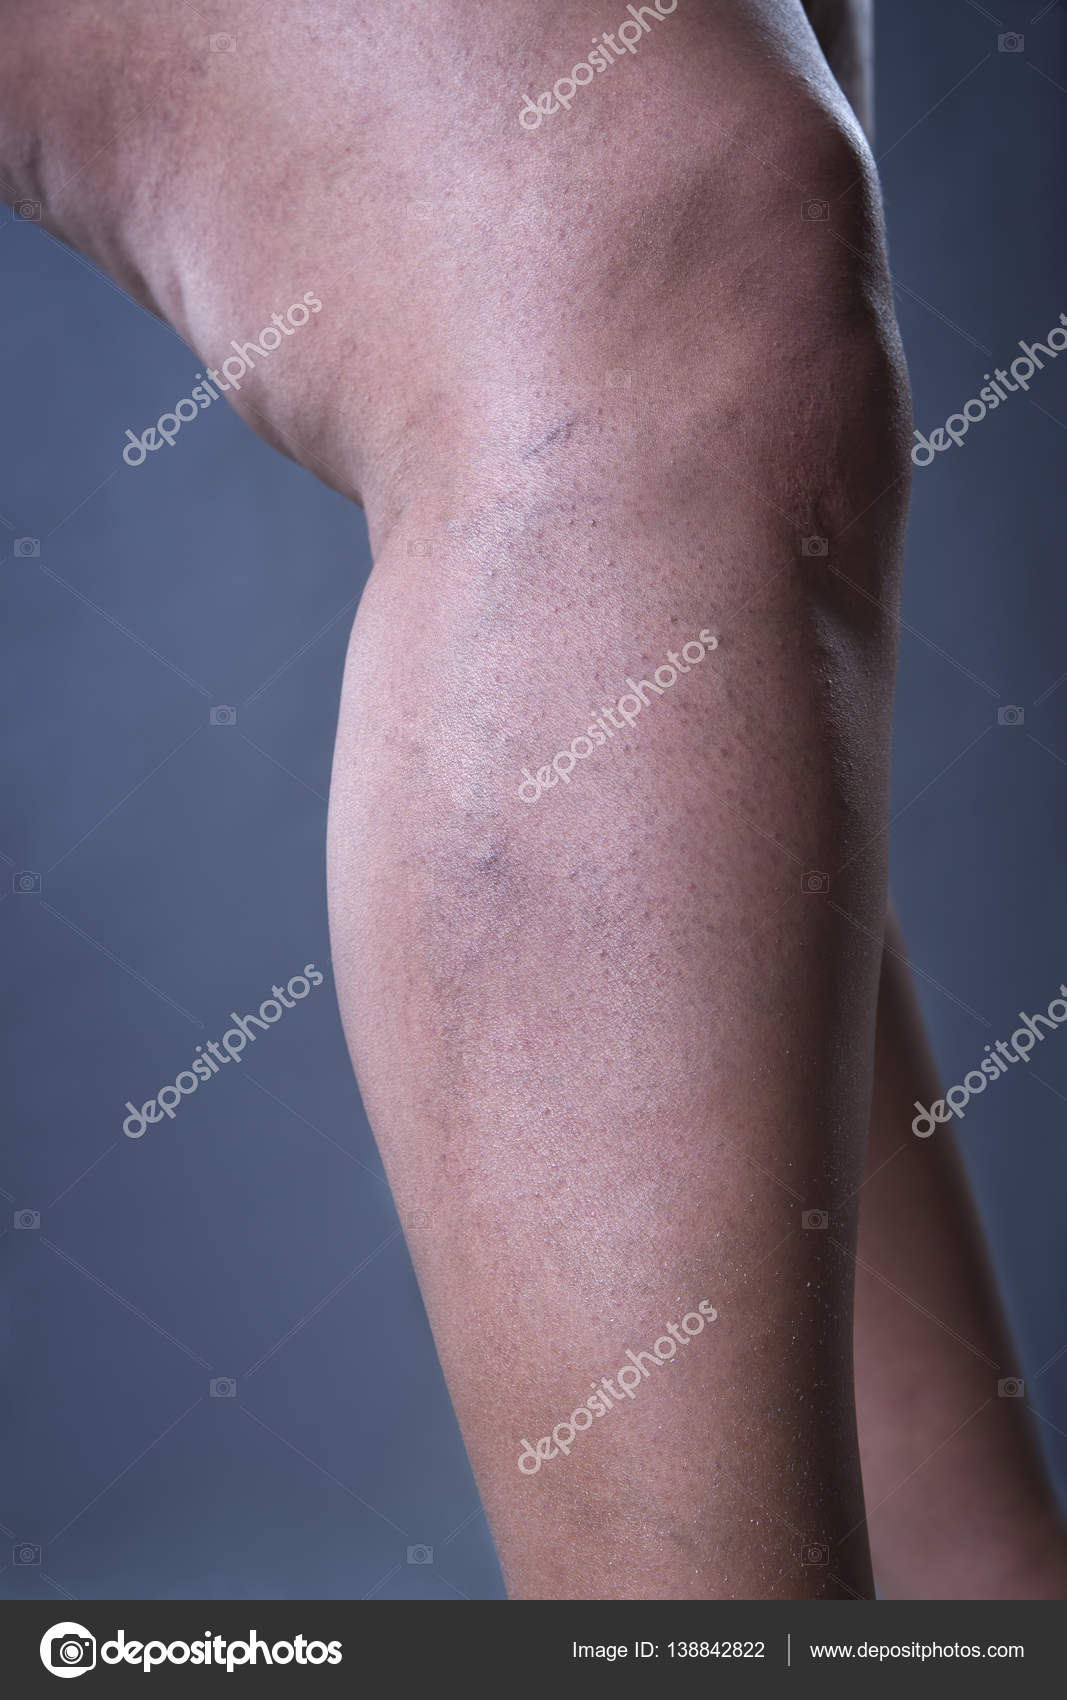 thick veins in legs